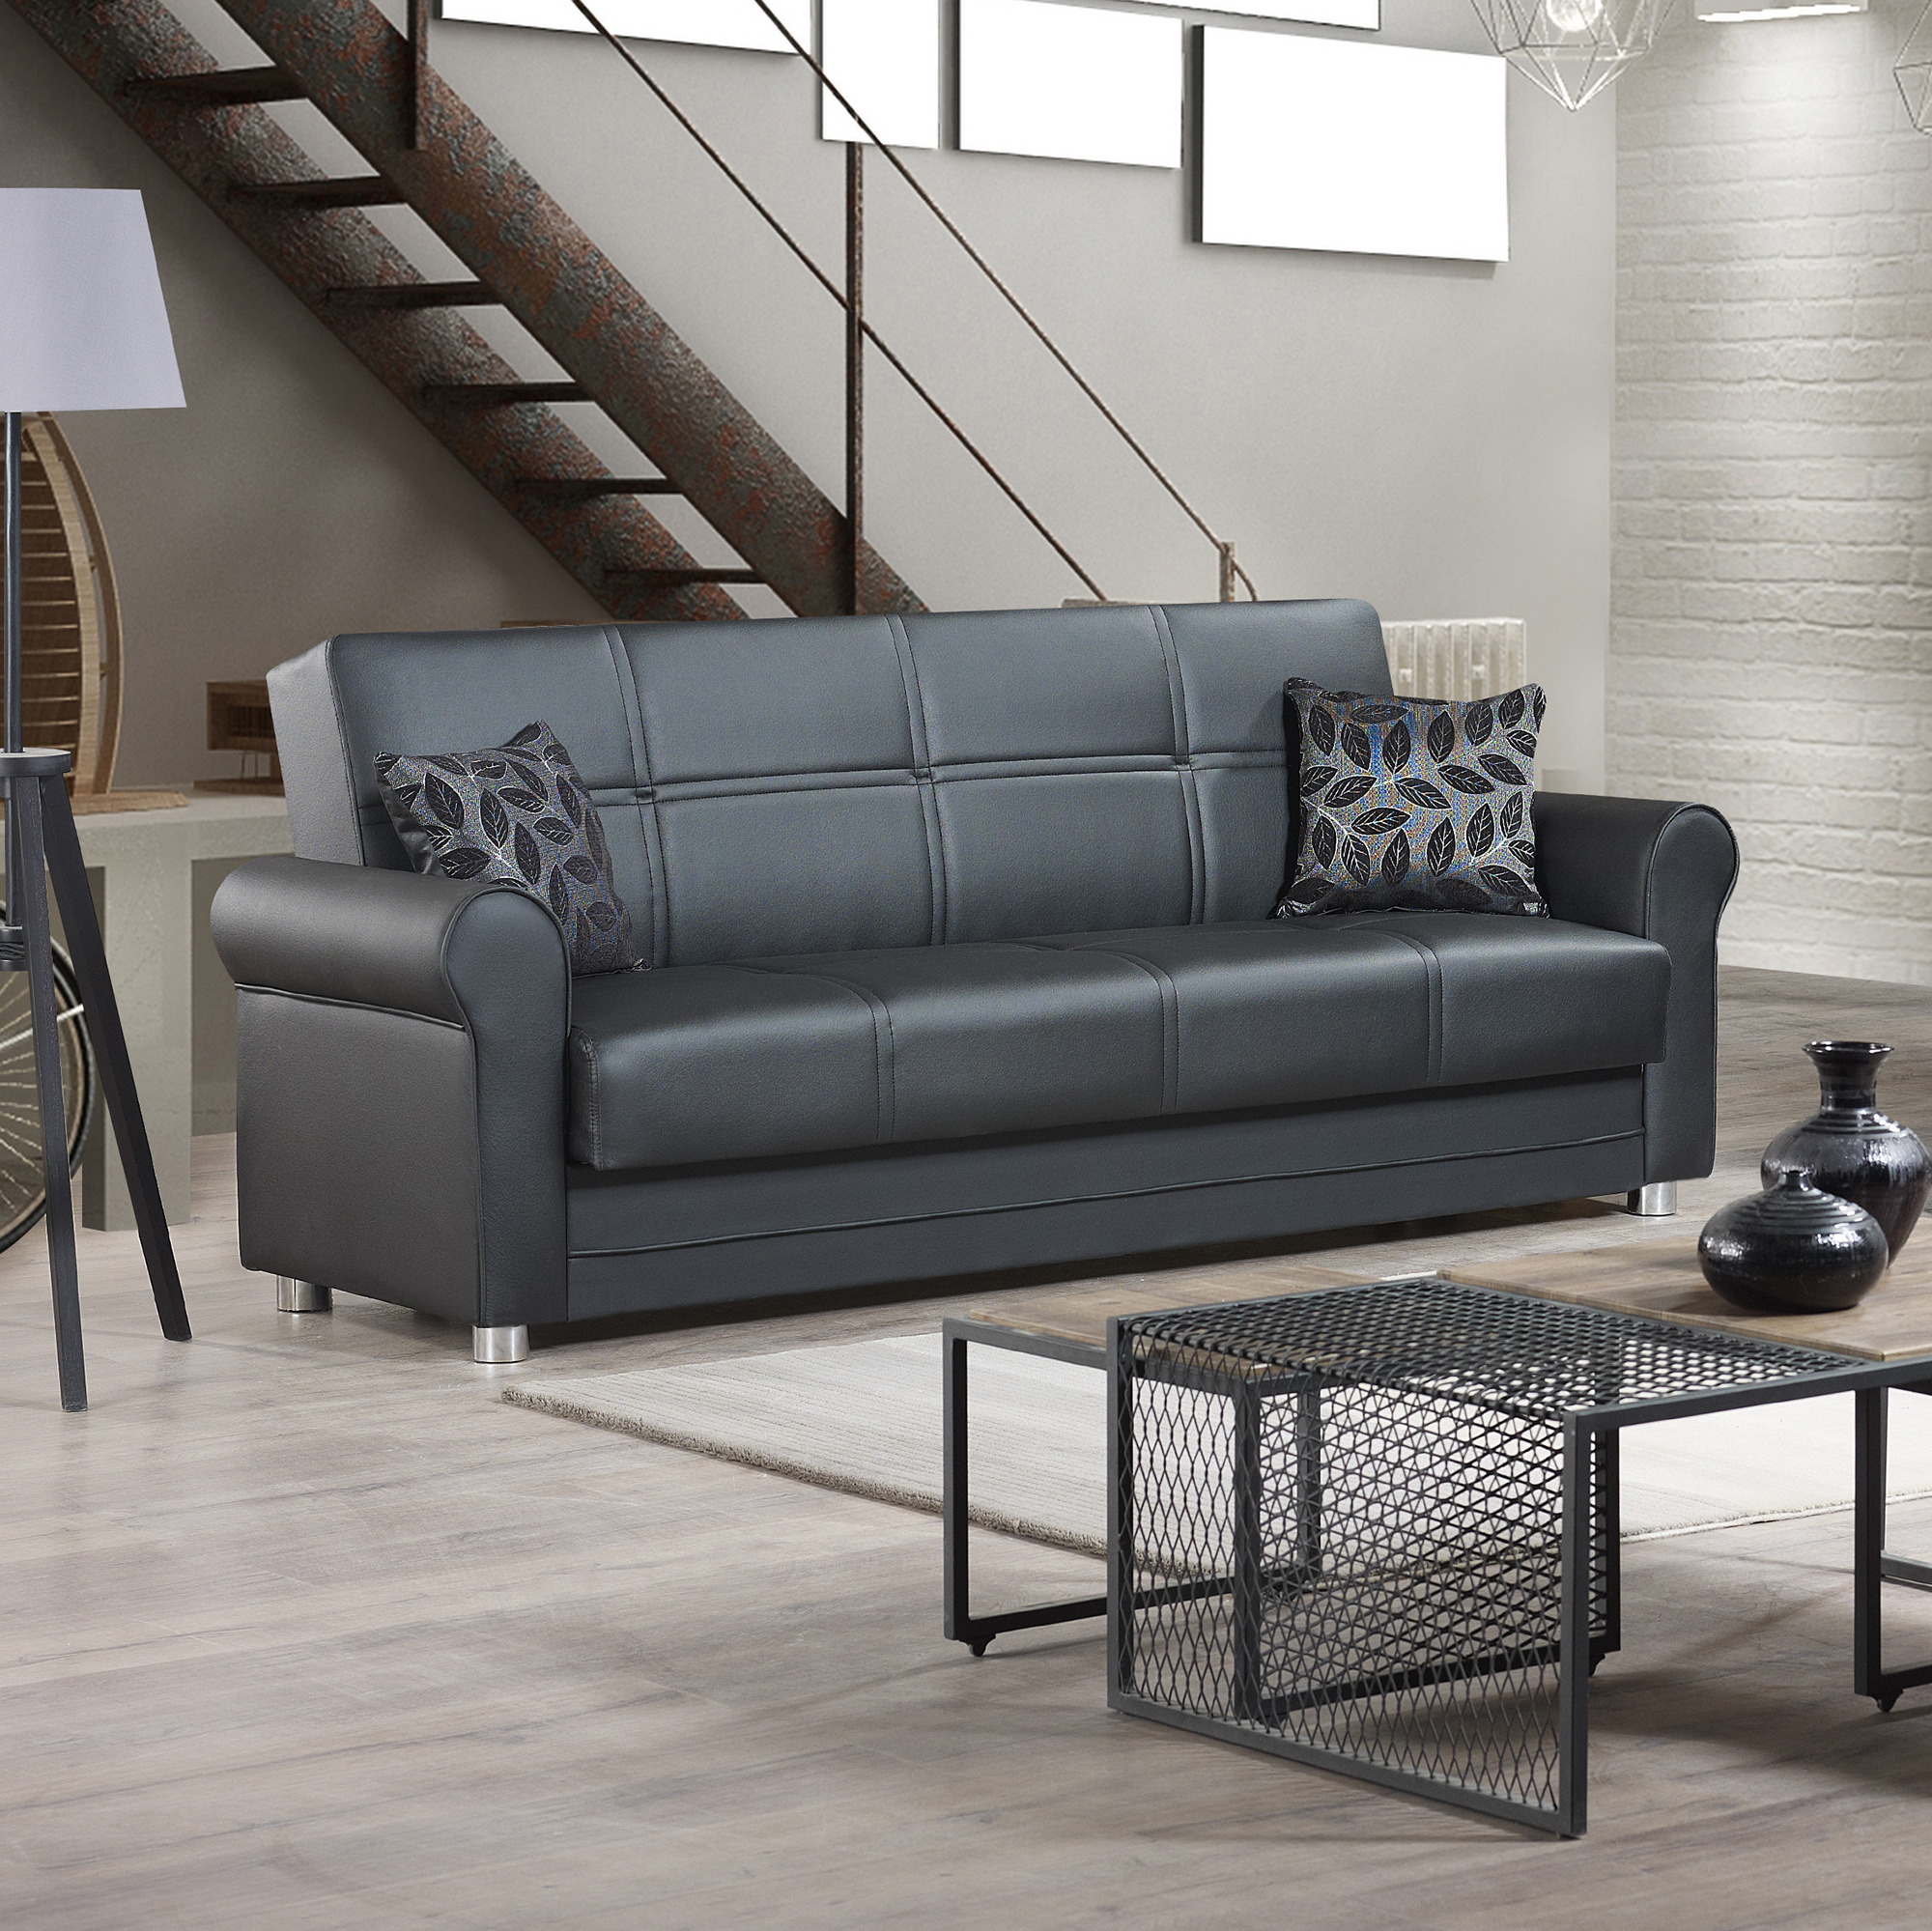 Ottomanson Avalon Sofa Bed With Storage In Leather Intended For Well Known Hartford Storage Sectional Futon Sofas (View 1 of 20)